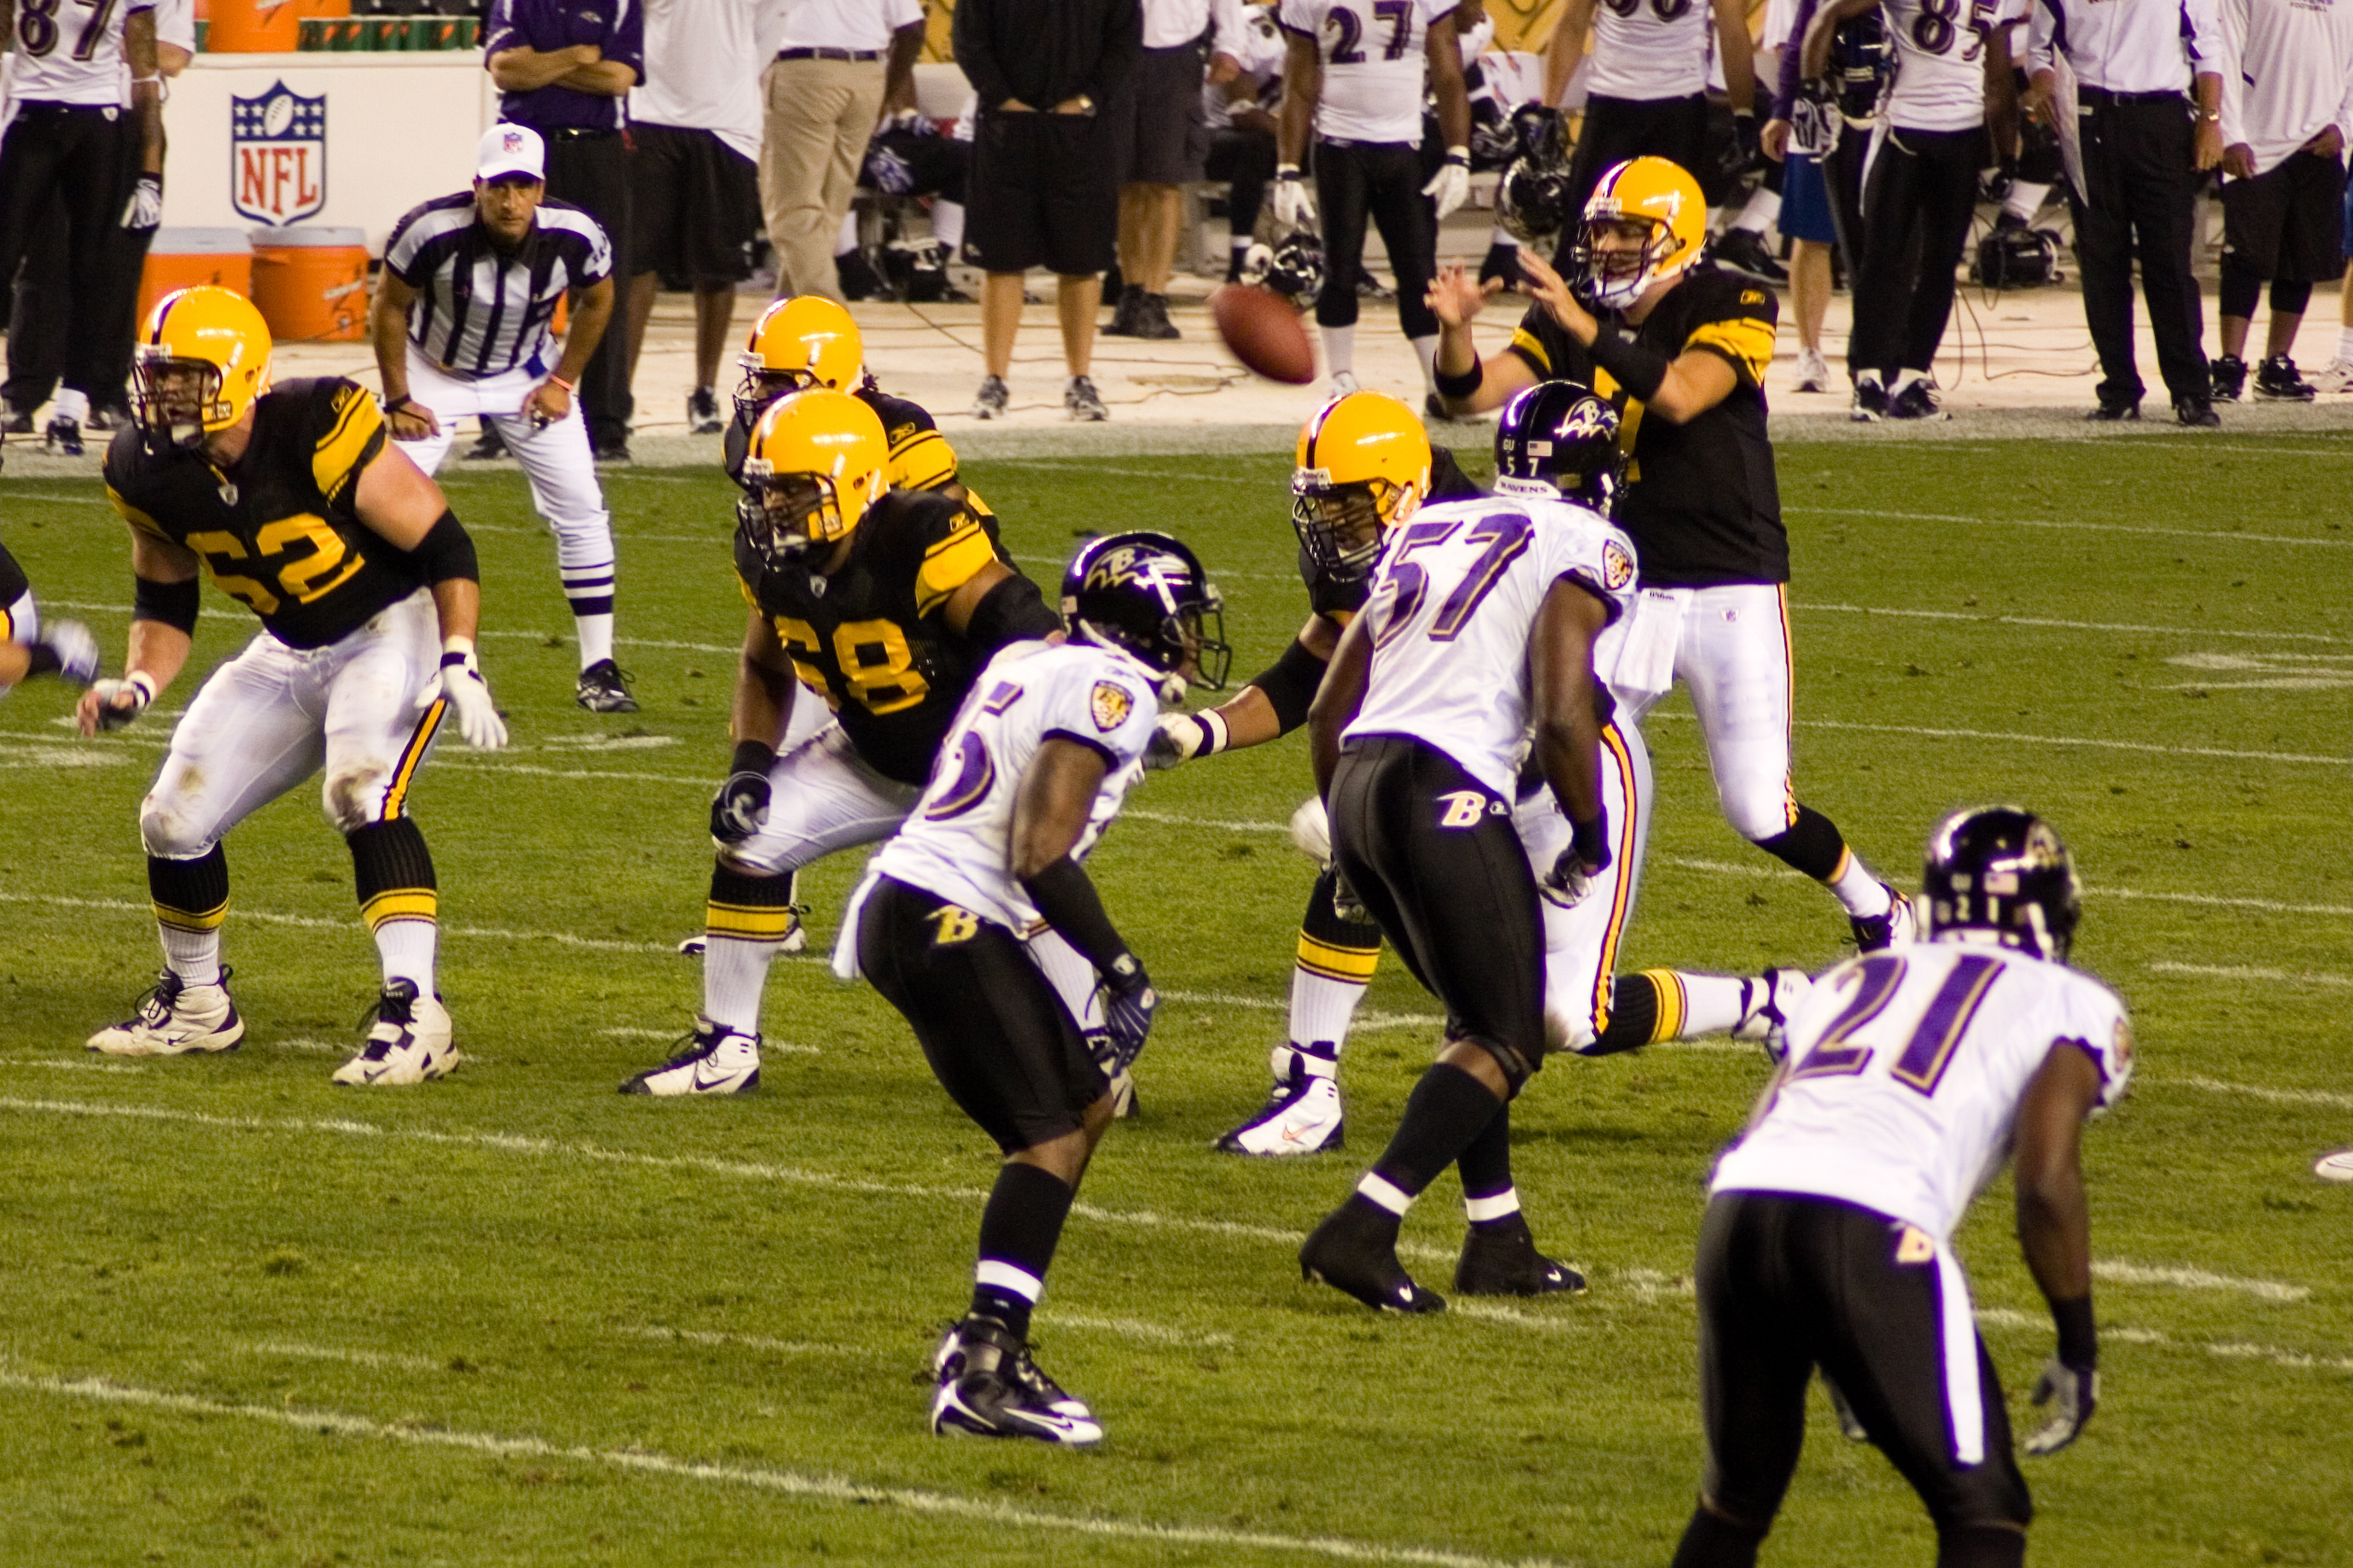 brand new f2518 37745 File:Ravens vs Steelers 2008 MNF 3.jpg - Wikimedia Commons